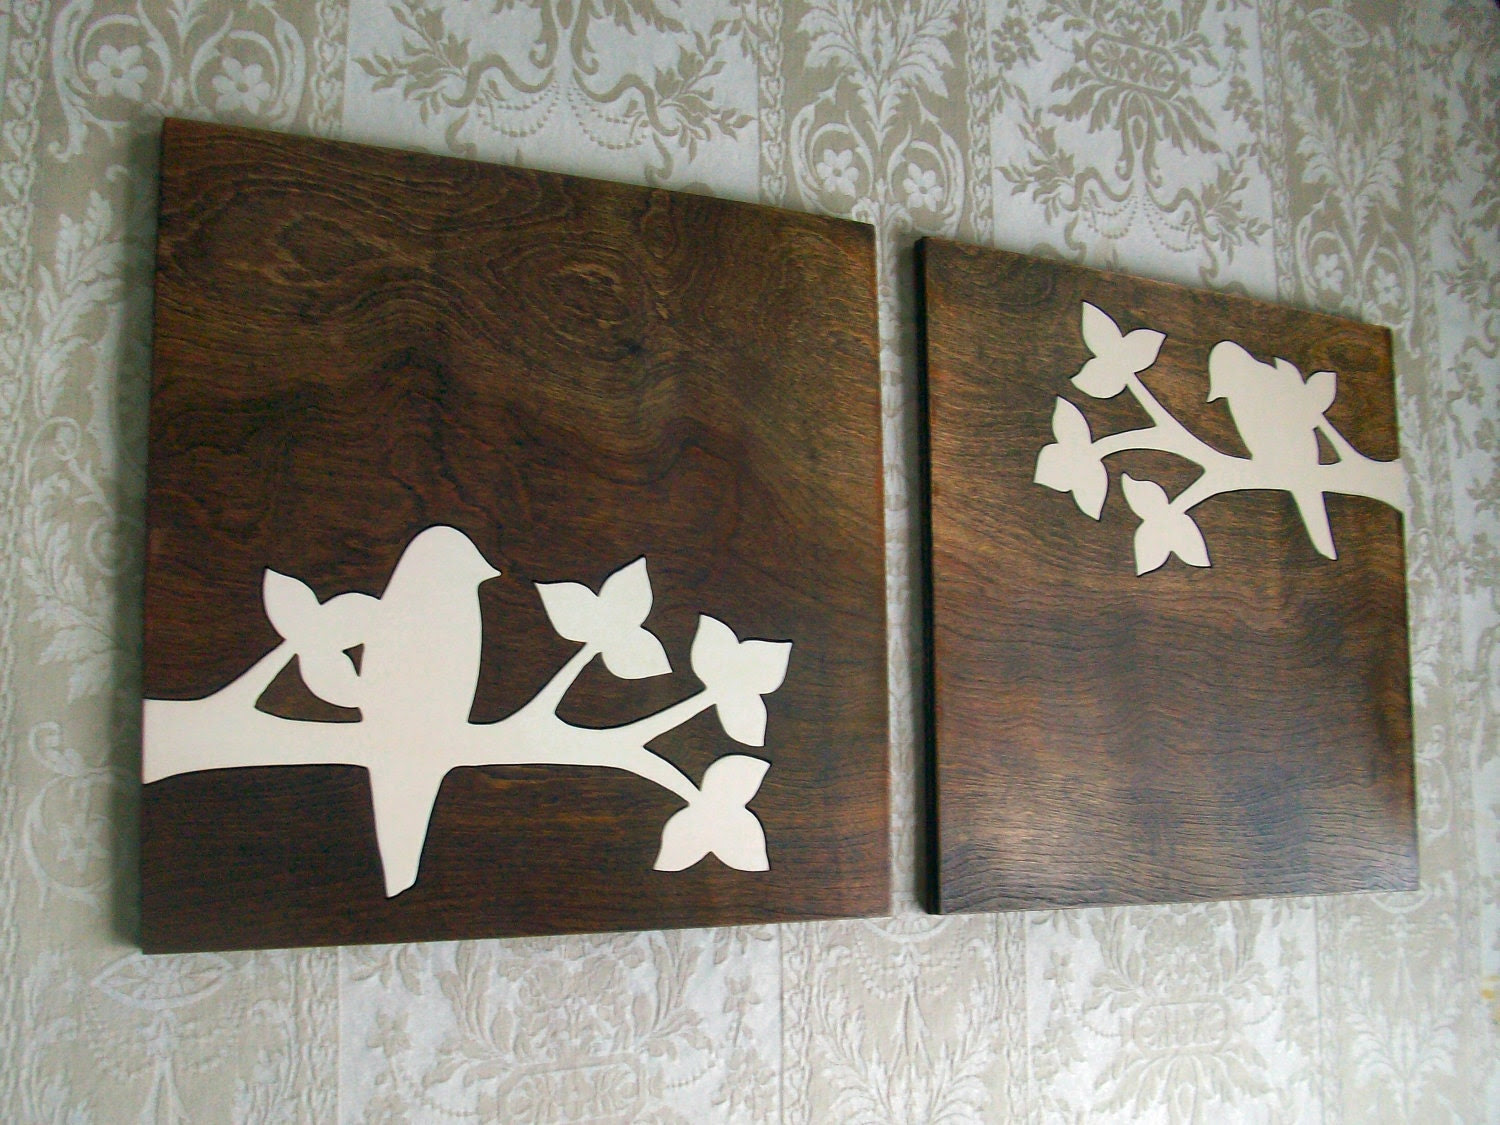 Popular items for wood wall decor on Etsy